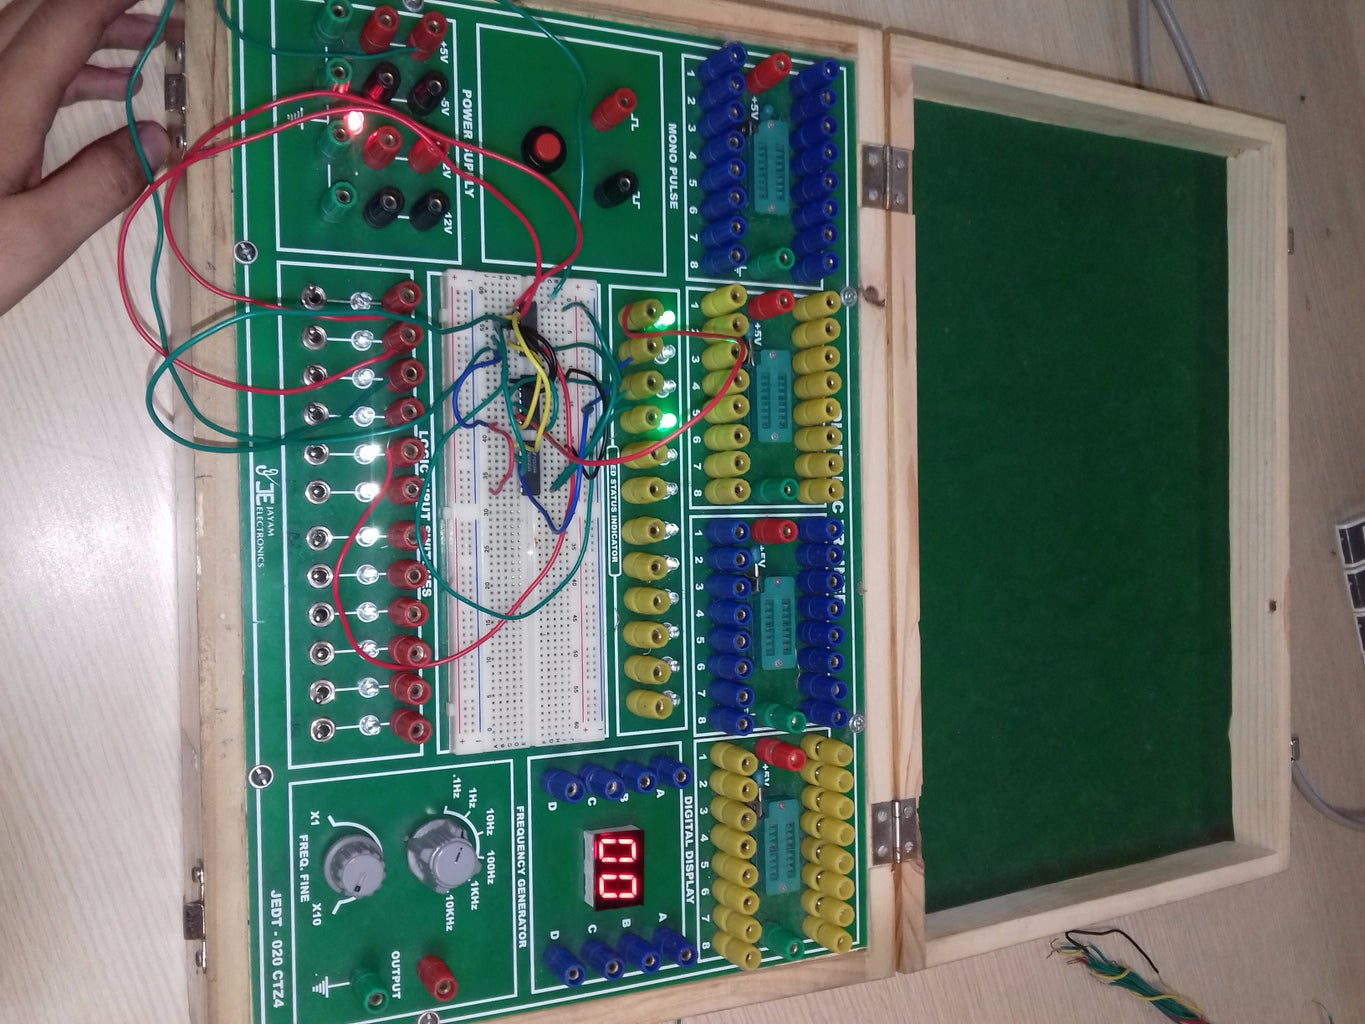 BINARY CODE CONVERTER USING 9S COMPLEMENT